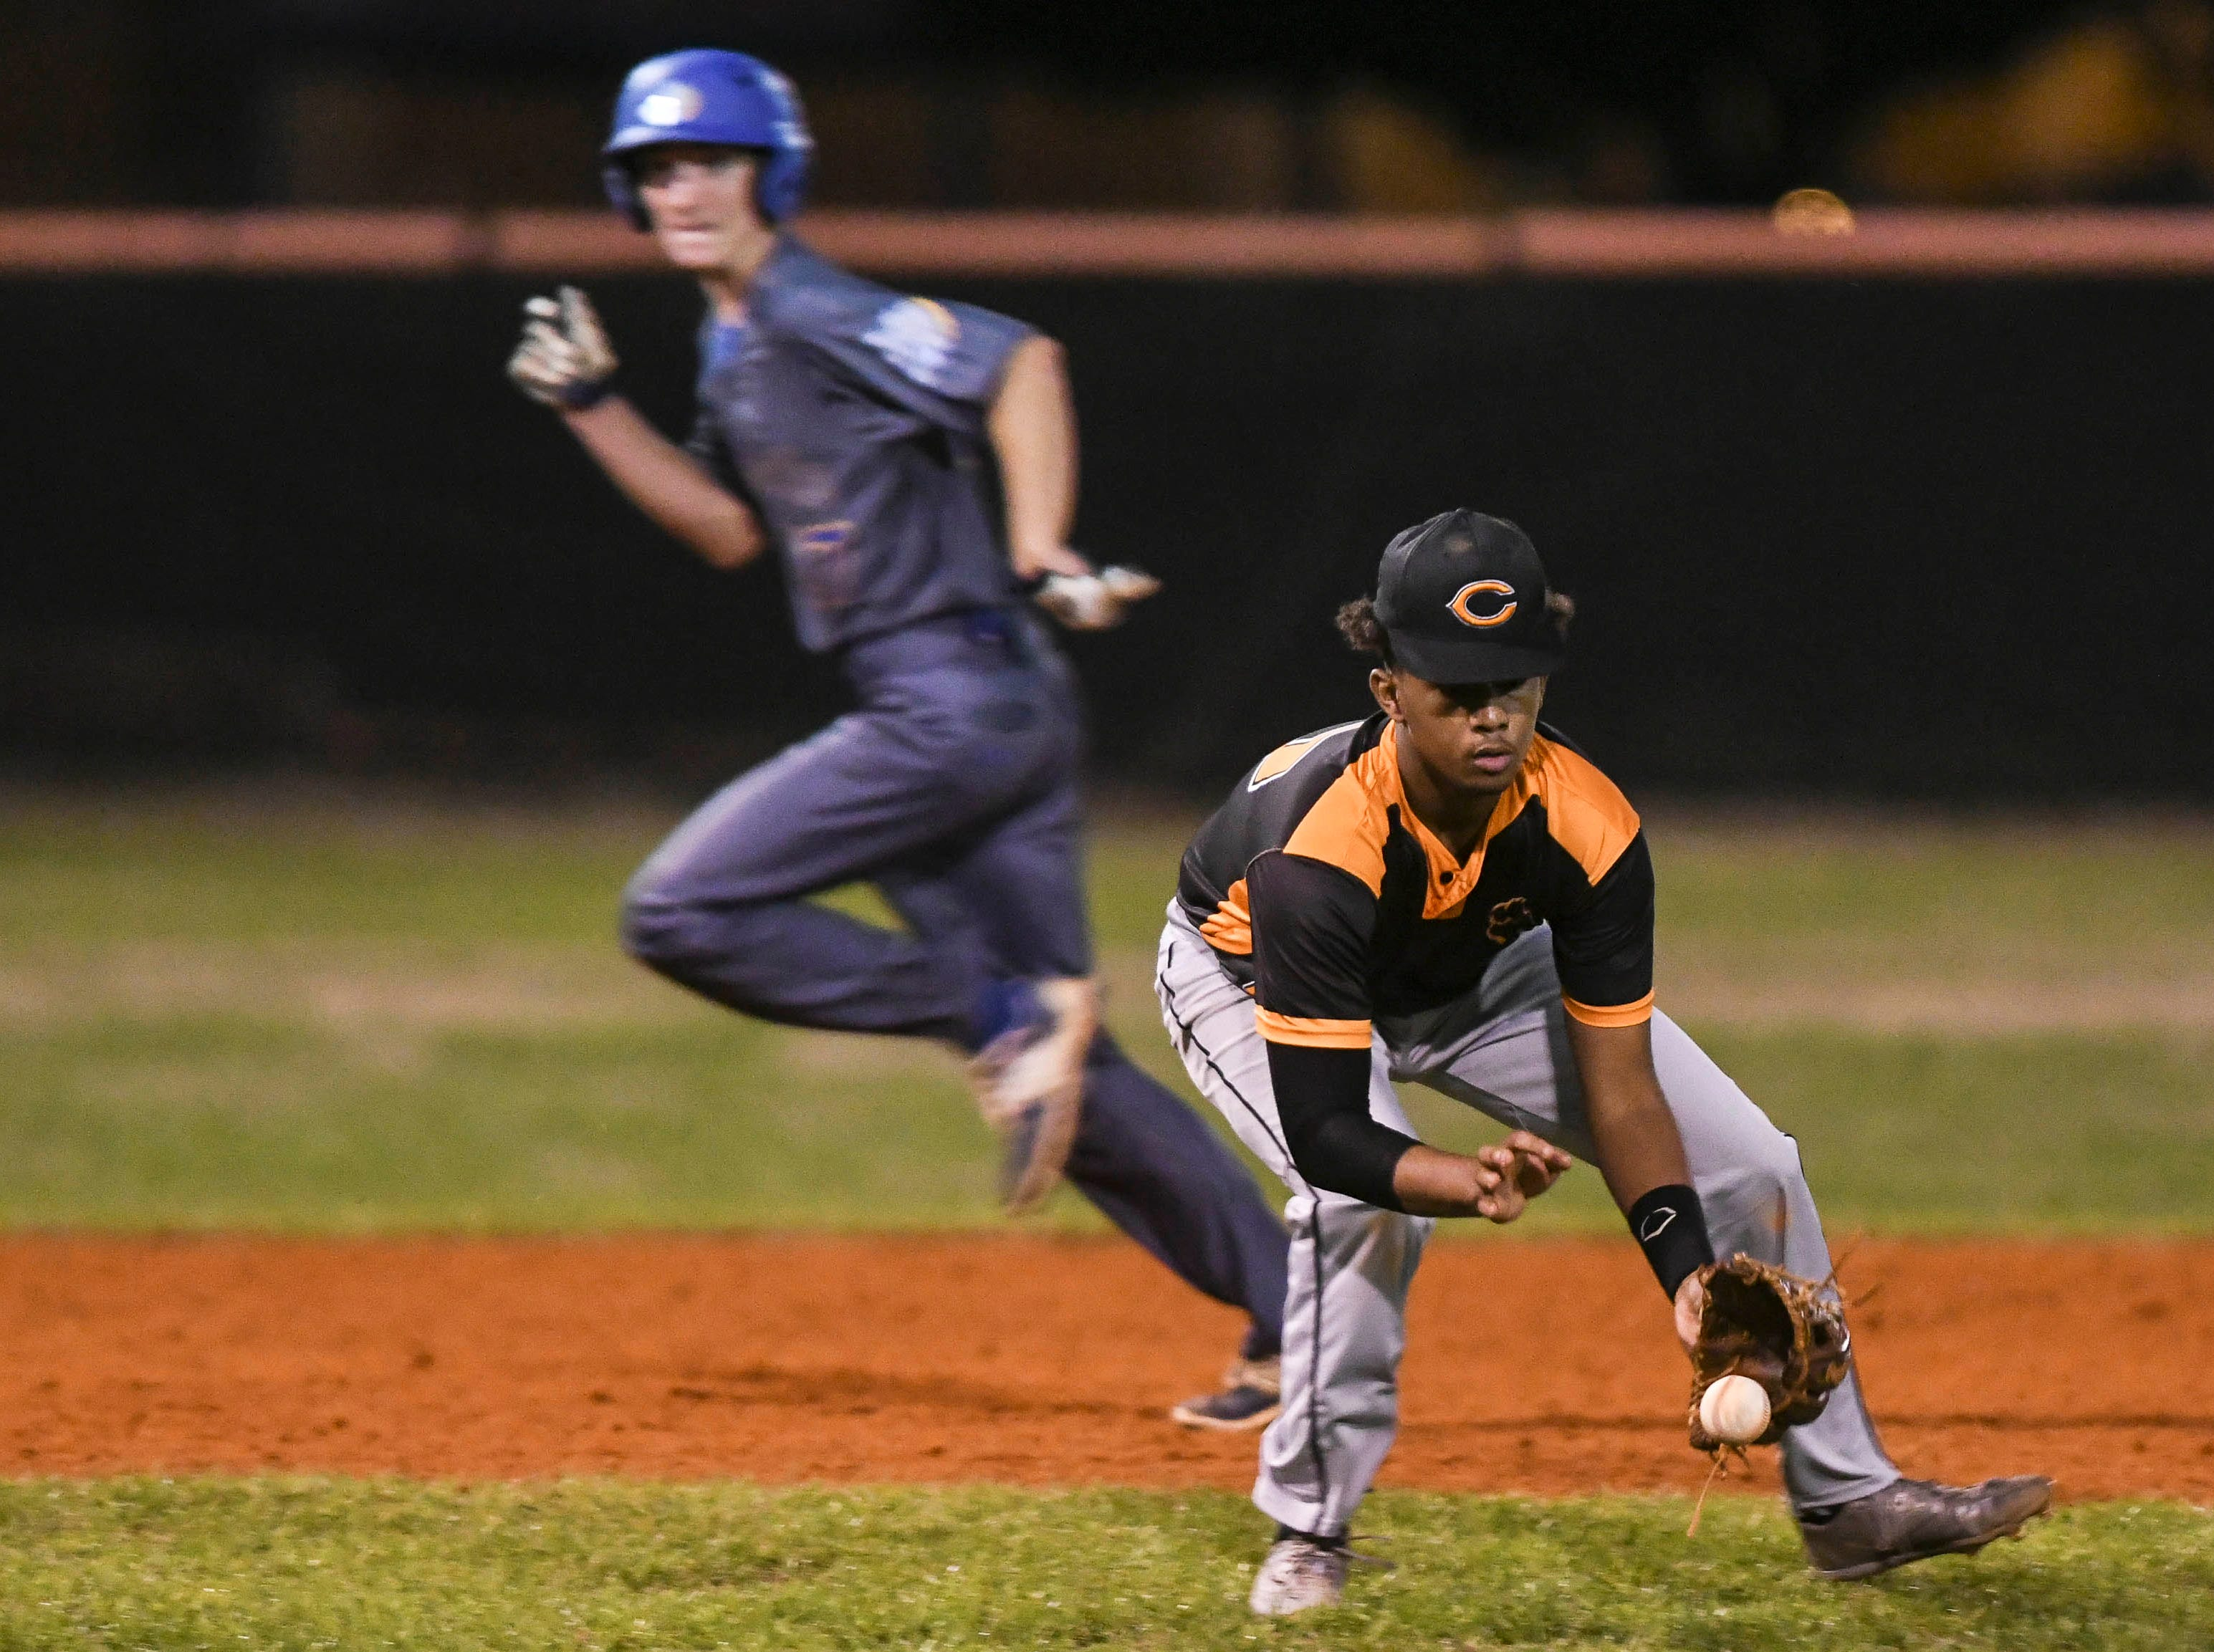 Cocoa's Marquis Pryor fields a grounder during Friday's game against Titusville.